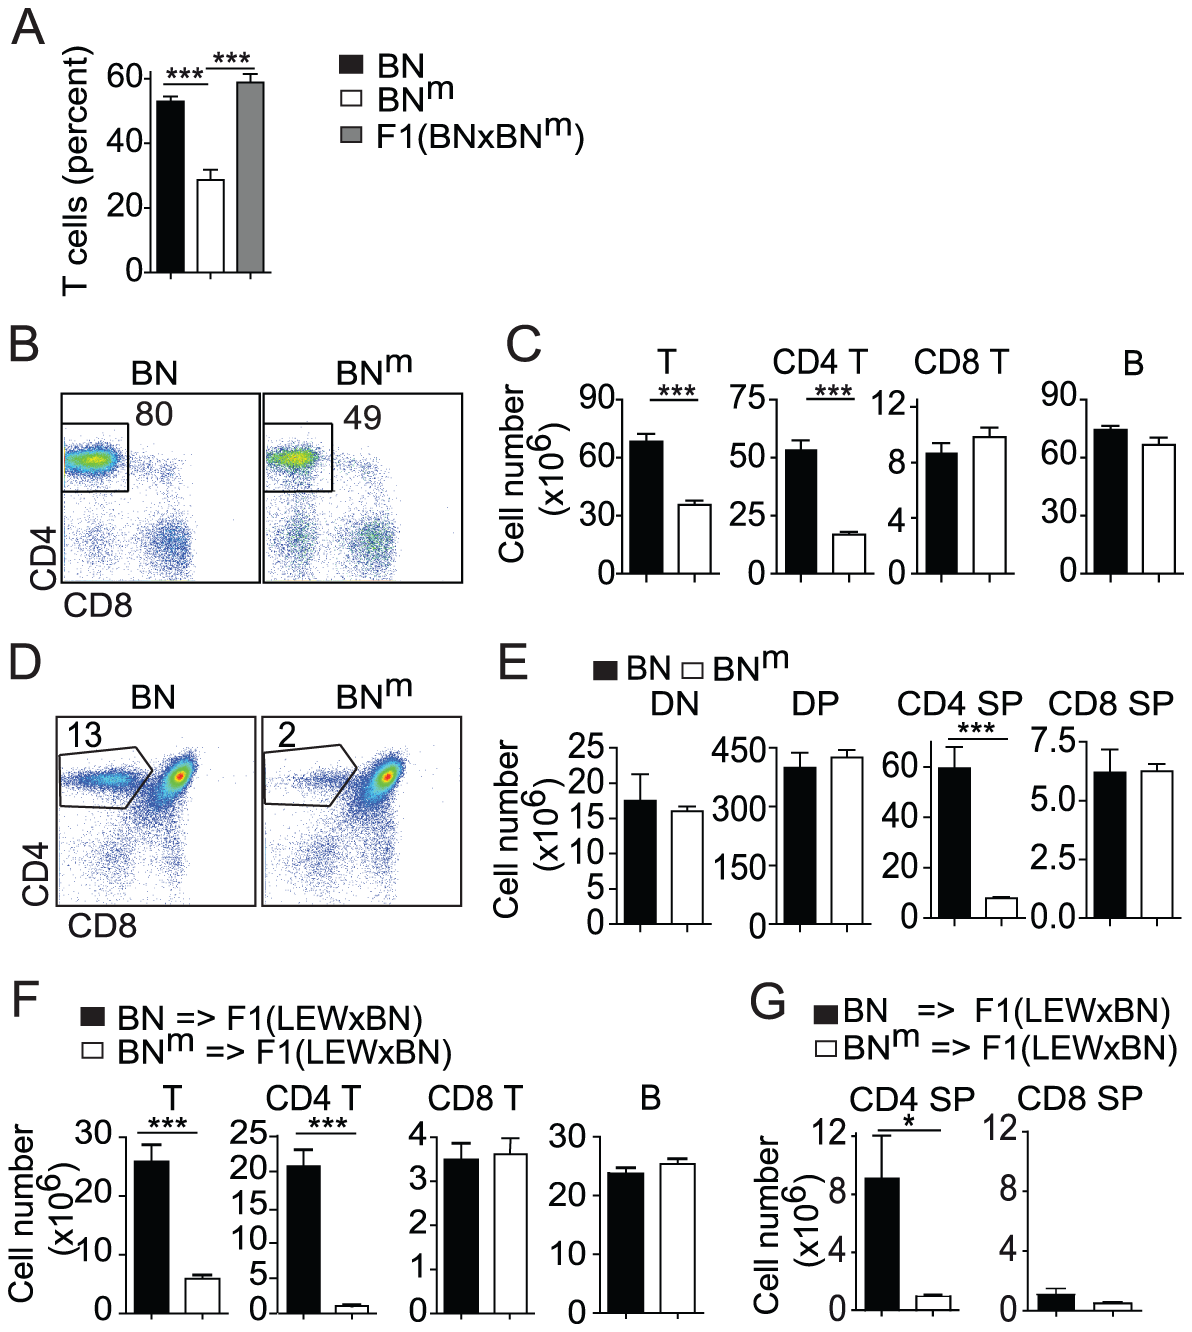 BN<sup>m</sup> rats exhibit a T cell autonomous lymphopenia restricted to CD4 T cells.